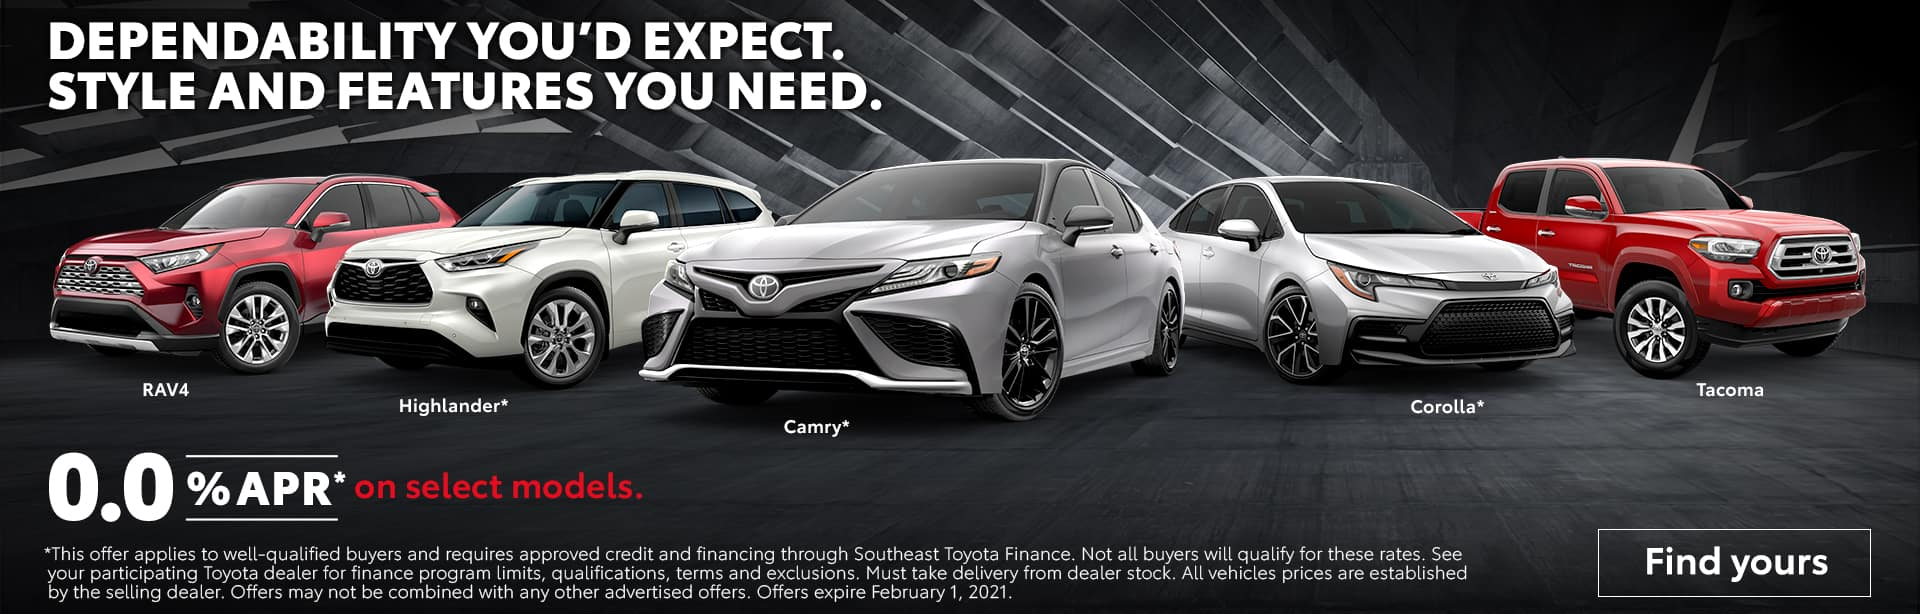 Dependability You'd Expect. Style & Features You Need